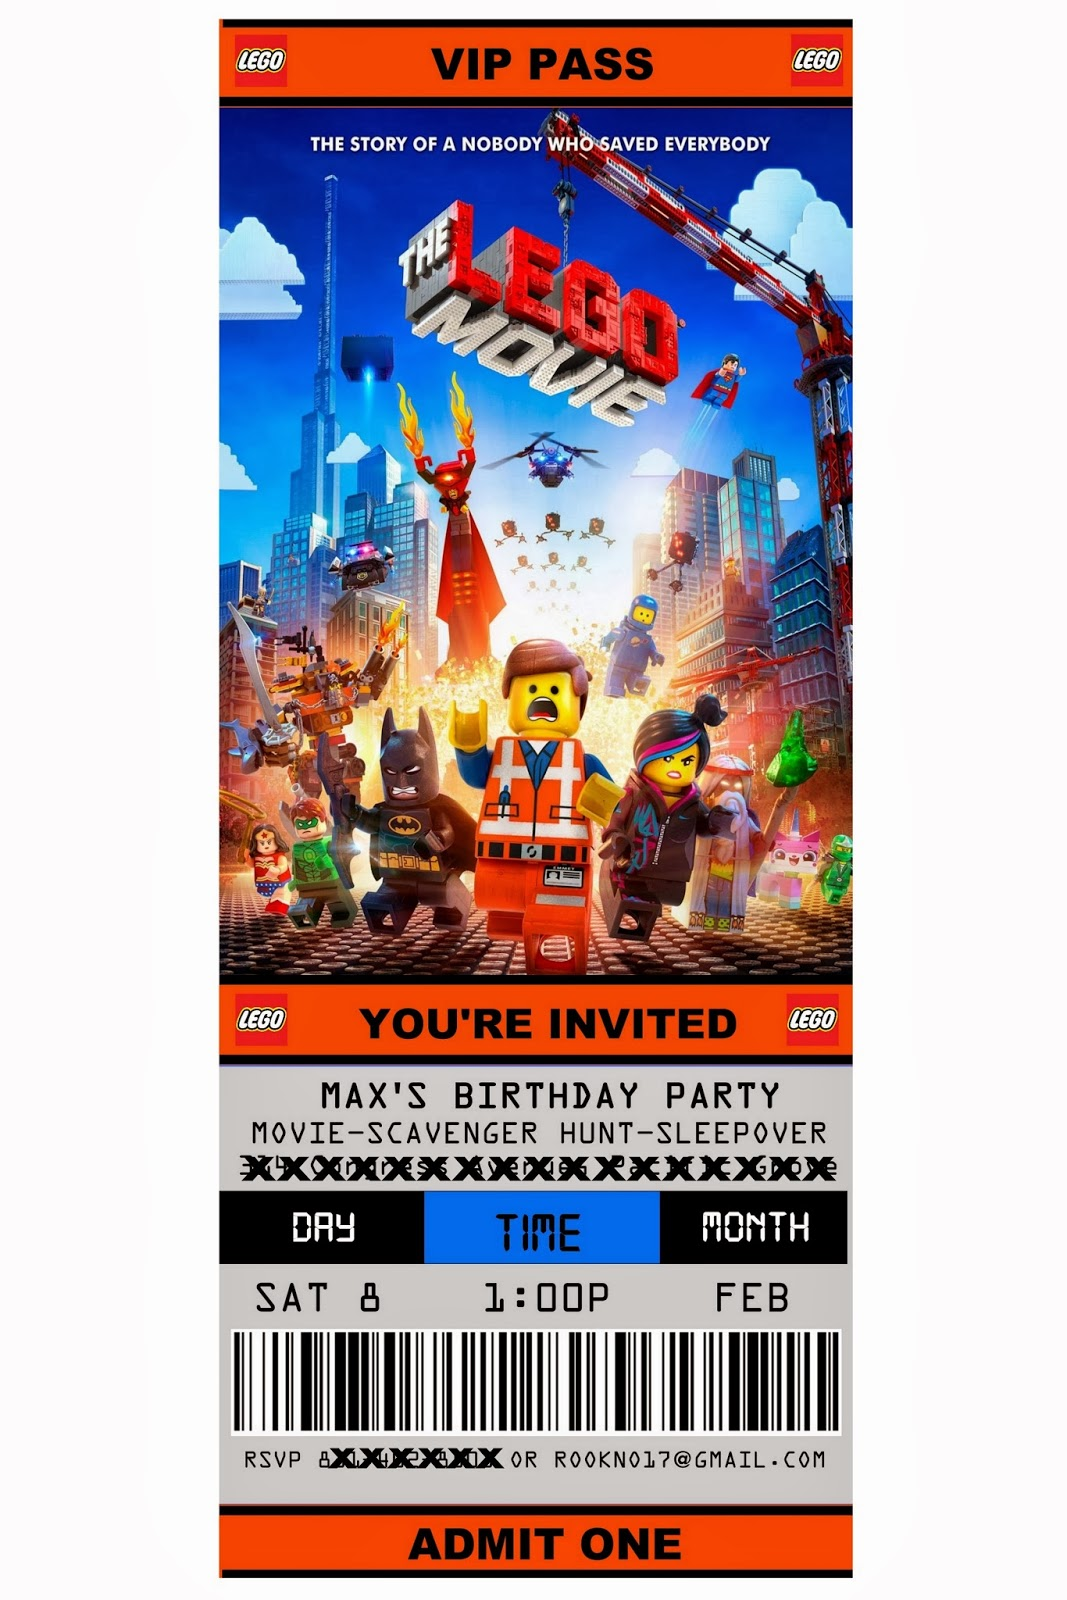 For My Daughteru0027s Toy Story Birthday Party, We Purchased Customized Ticket Style  Invitations.  Free Printable Ticket Style Invitations